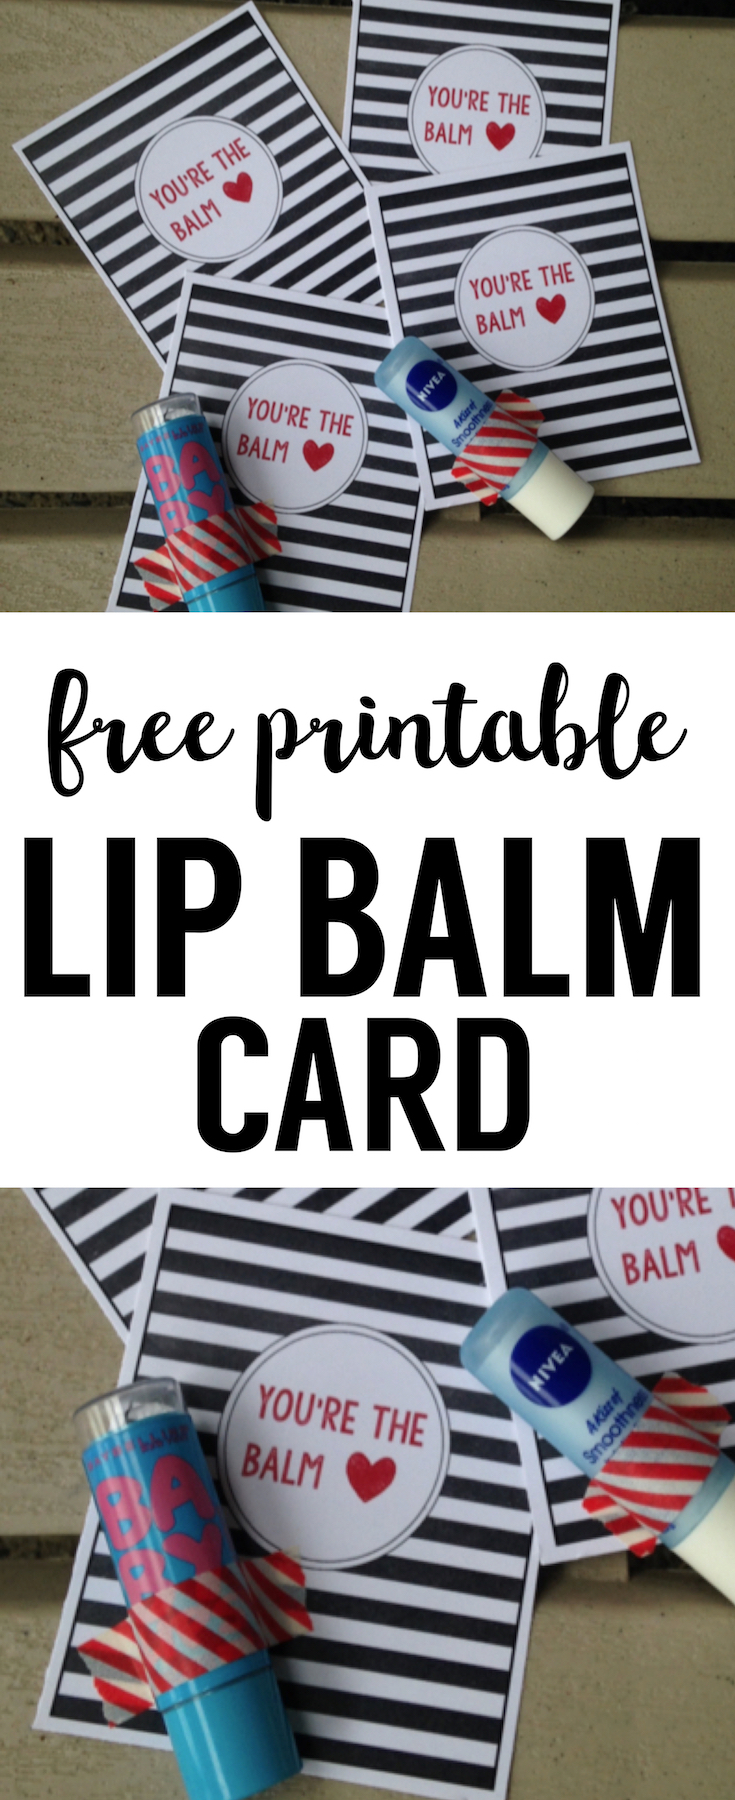 photo relating to You Re the Balm Printable titled Chapstick Card Cost-free Printable \